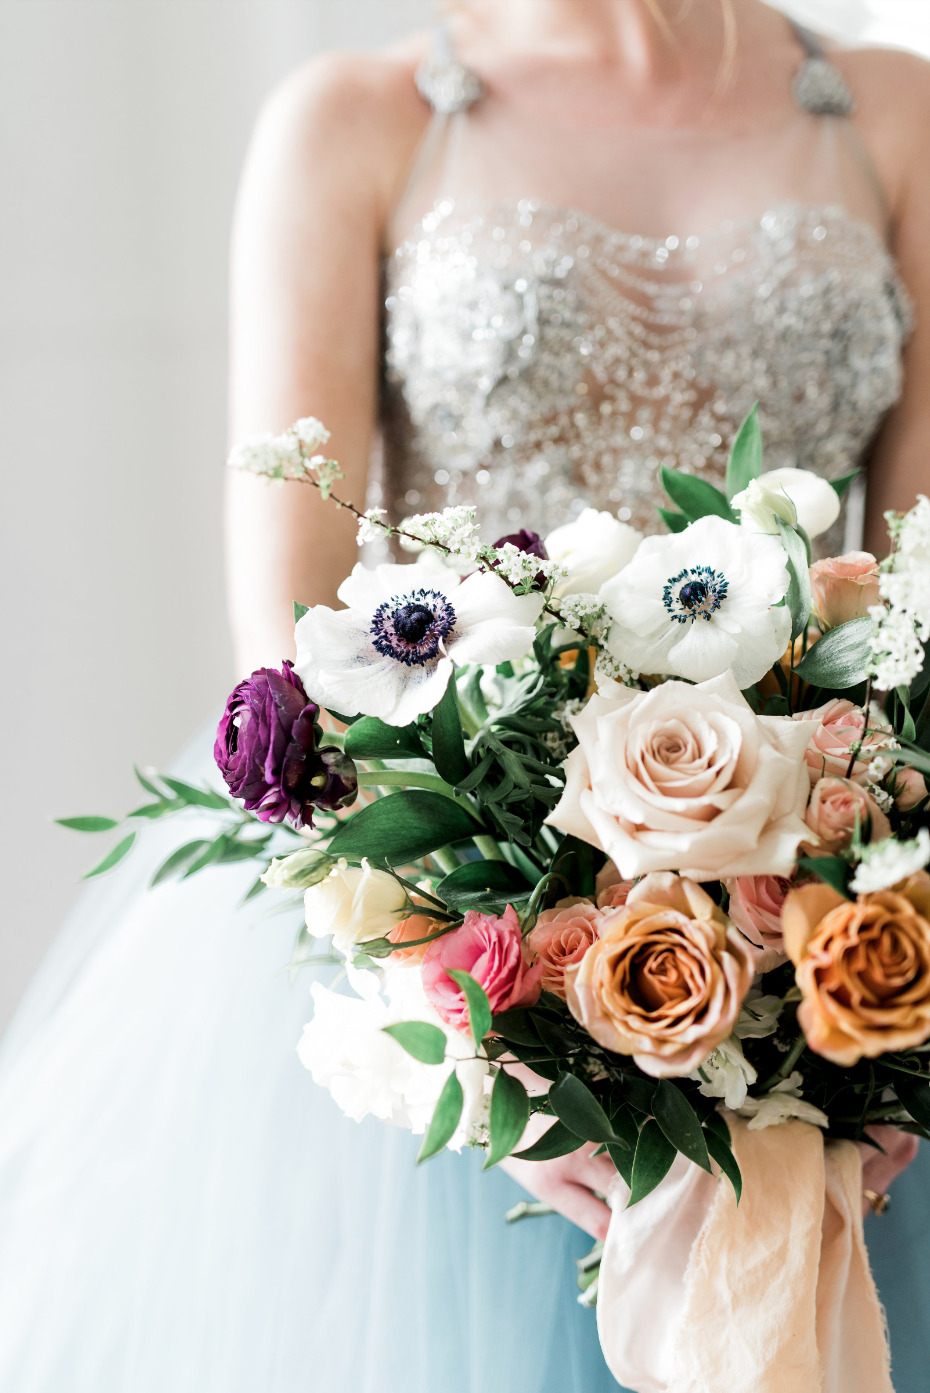 anomone wedding bouquet mixed in with roses